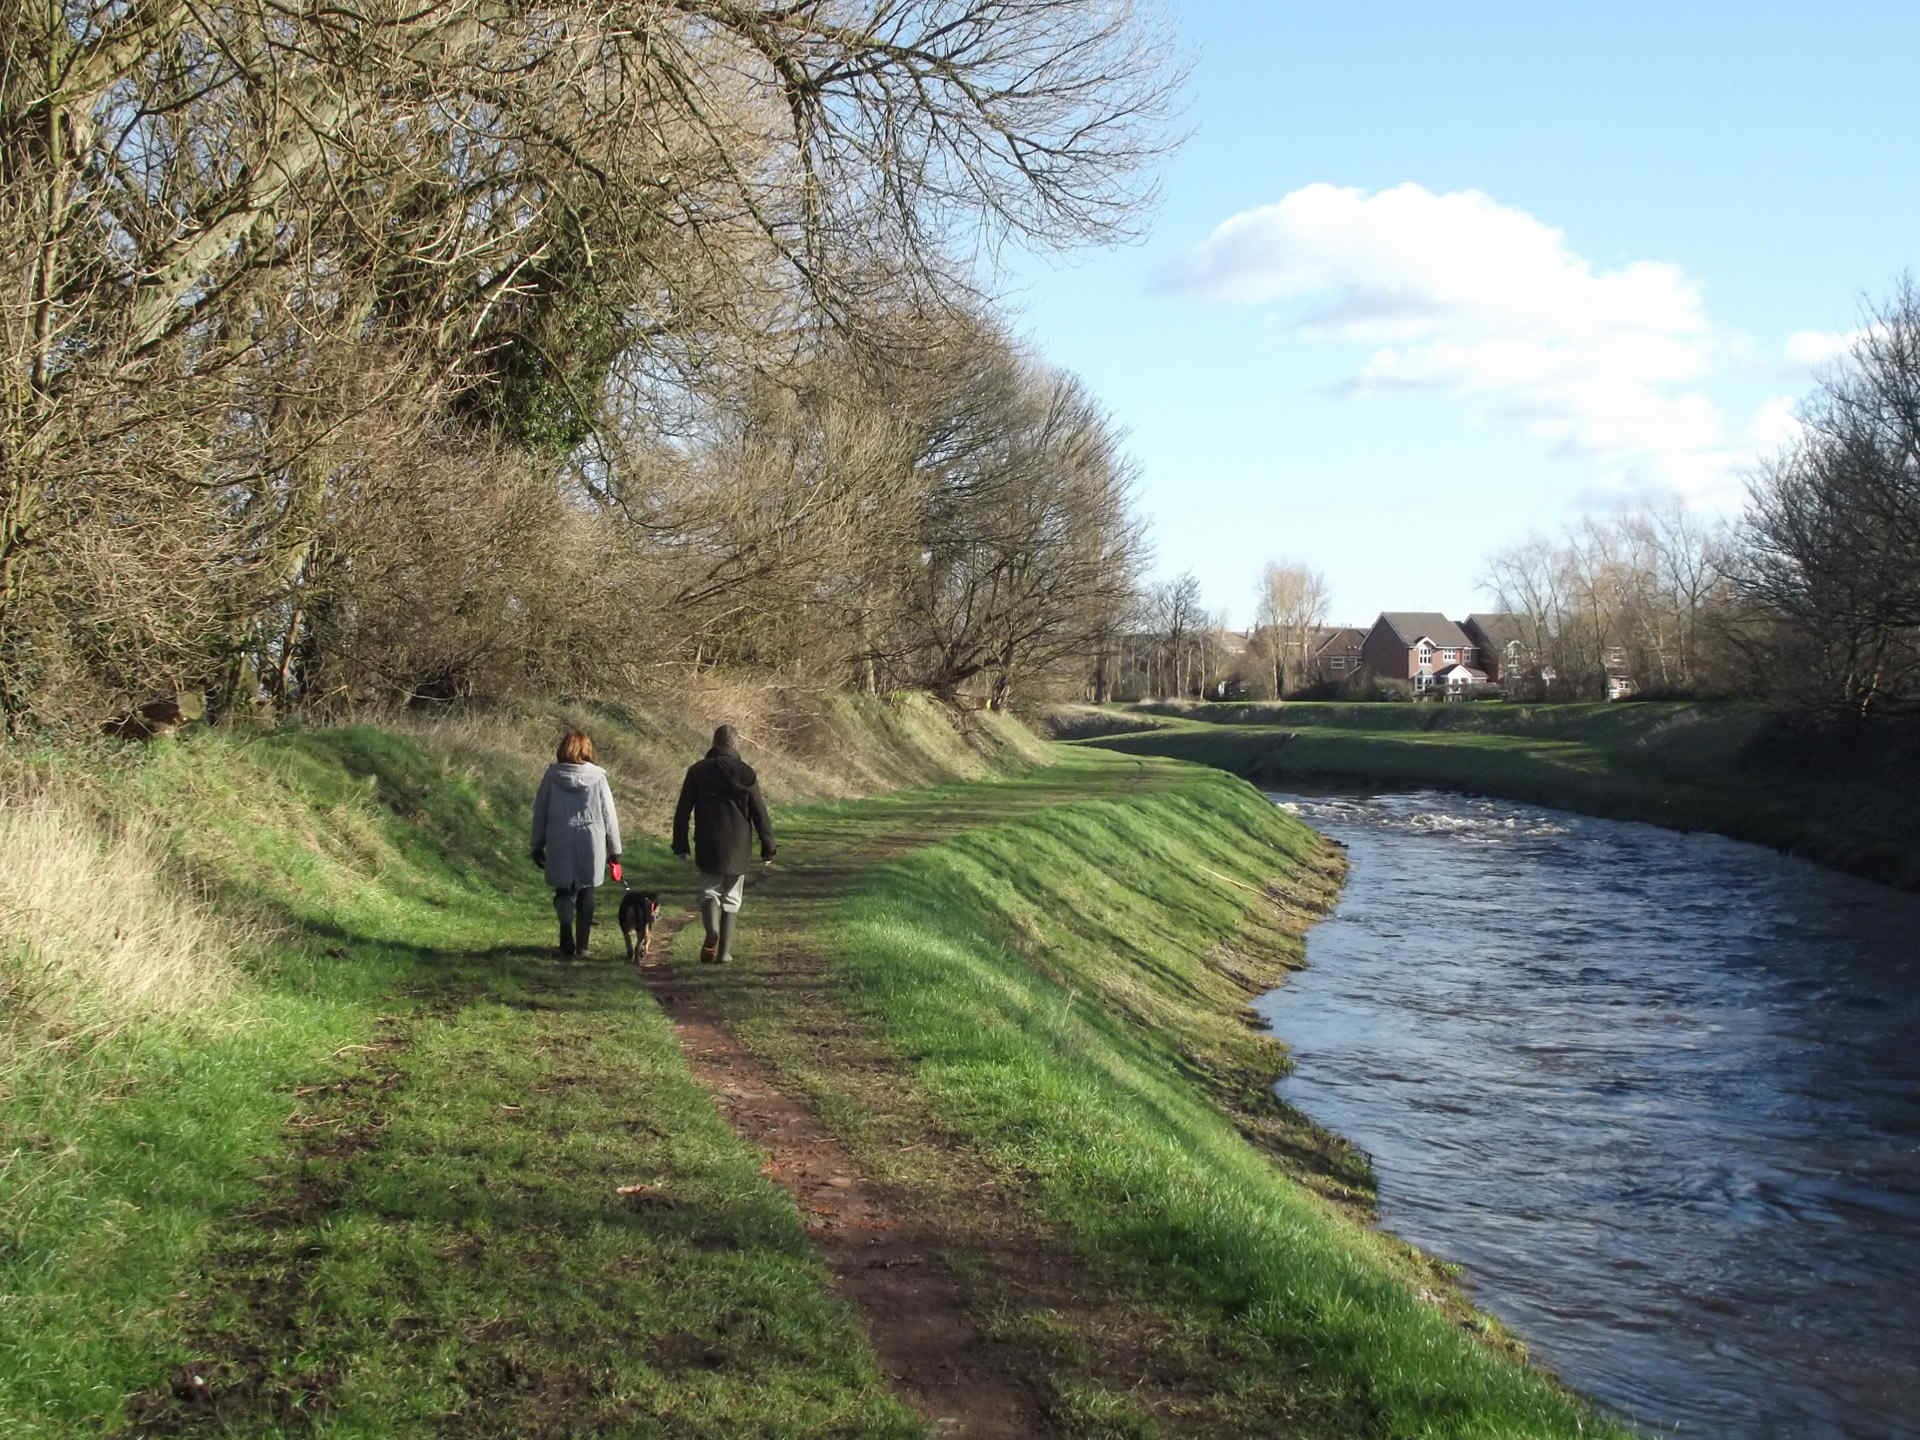 A man and woman in middle distance walk with a dog along a river bank